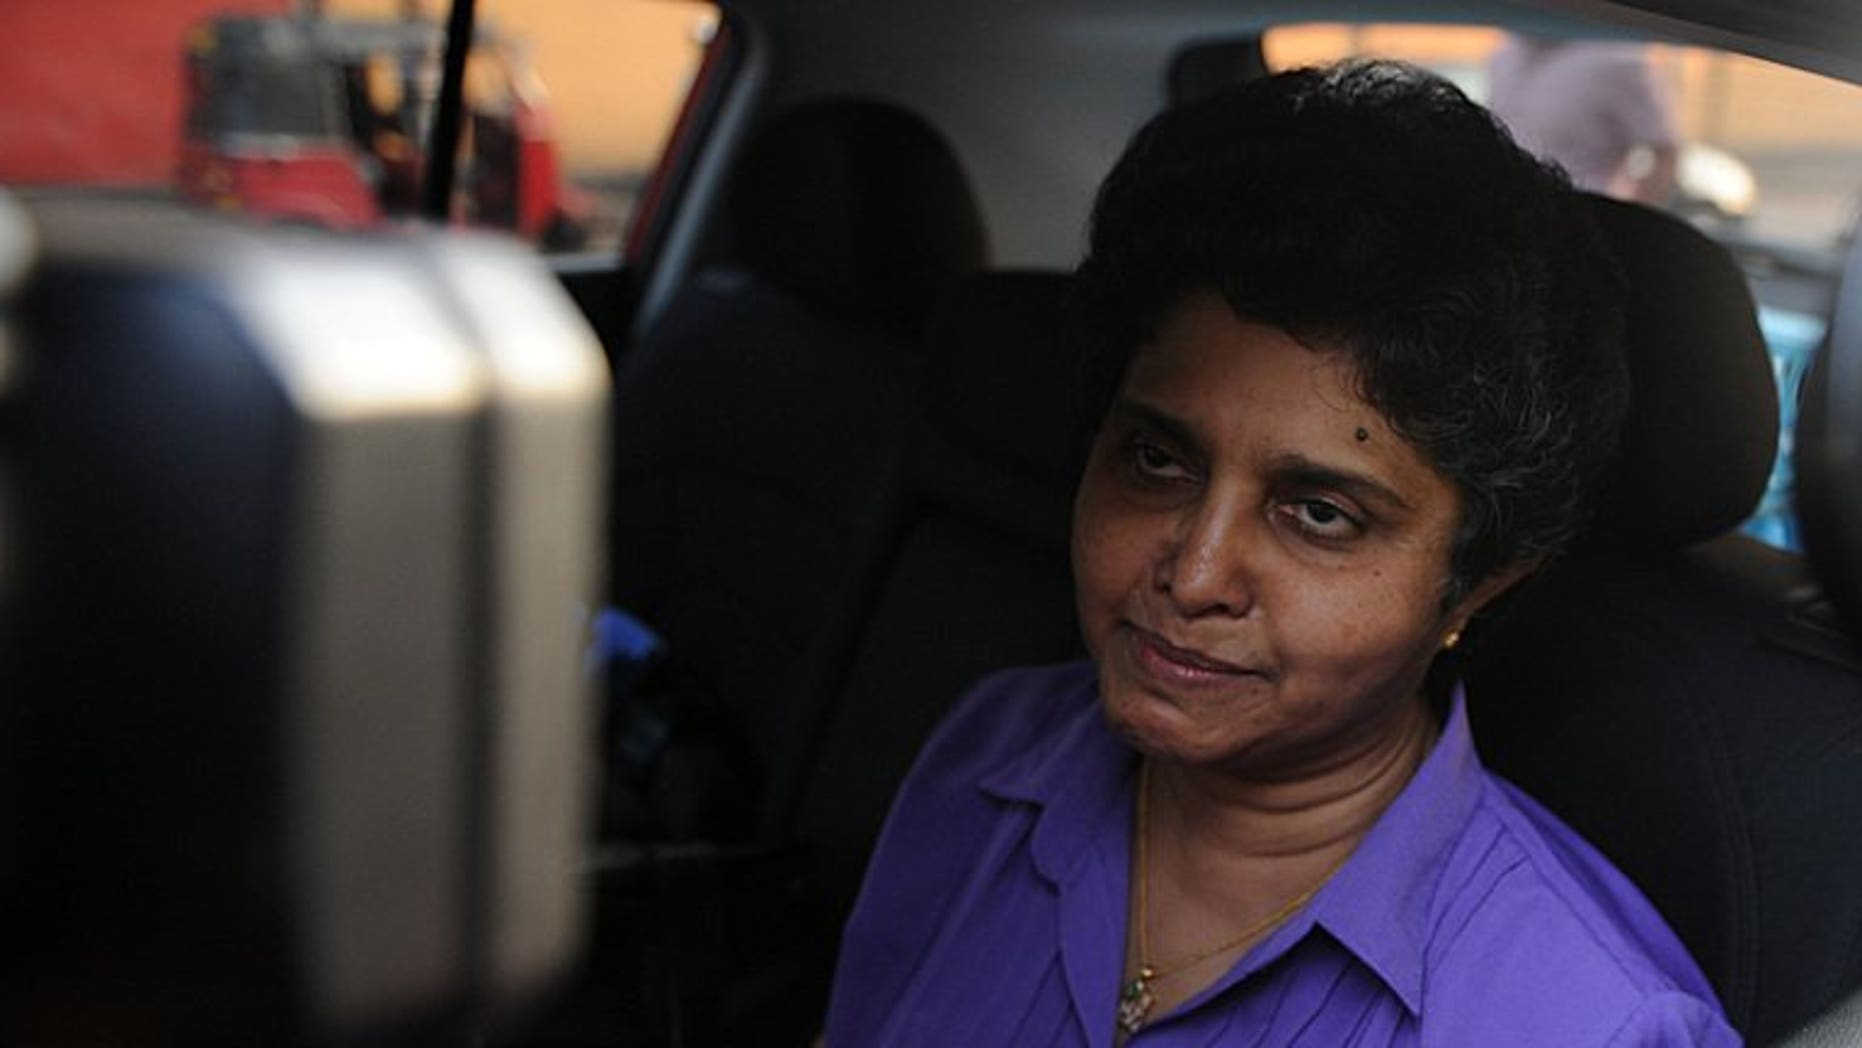 Sri Lanka's former chief justice Shirani Bandaranayake leaves her official residence in Colombo, on January 15, 2013. Sri Lanka has brought criminal charges of corruption against Bandaranayake whose sacking earlier this year was internationally criticised as a blow to judicial independence.